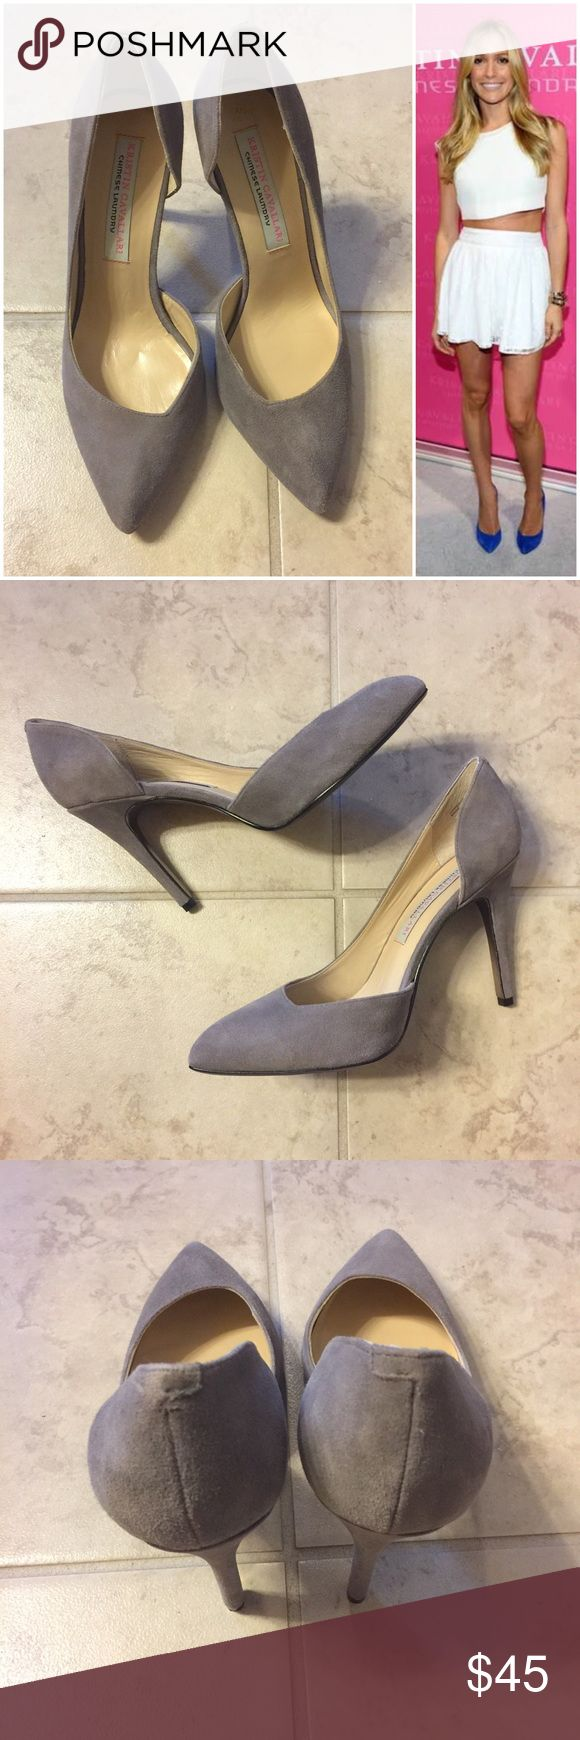 Chinese Laundry Kristin Cavallari Copertina pump Color is gray suede. Worn once for about an hour and there's really no sign of wear so they are practically new. Genuine suede. Chinese laundry by Kristin Cavallari Chinese Laundry Shoes Heels